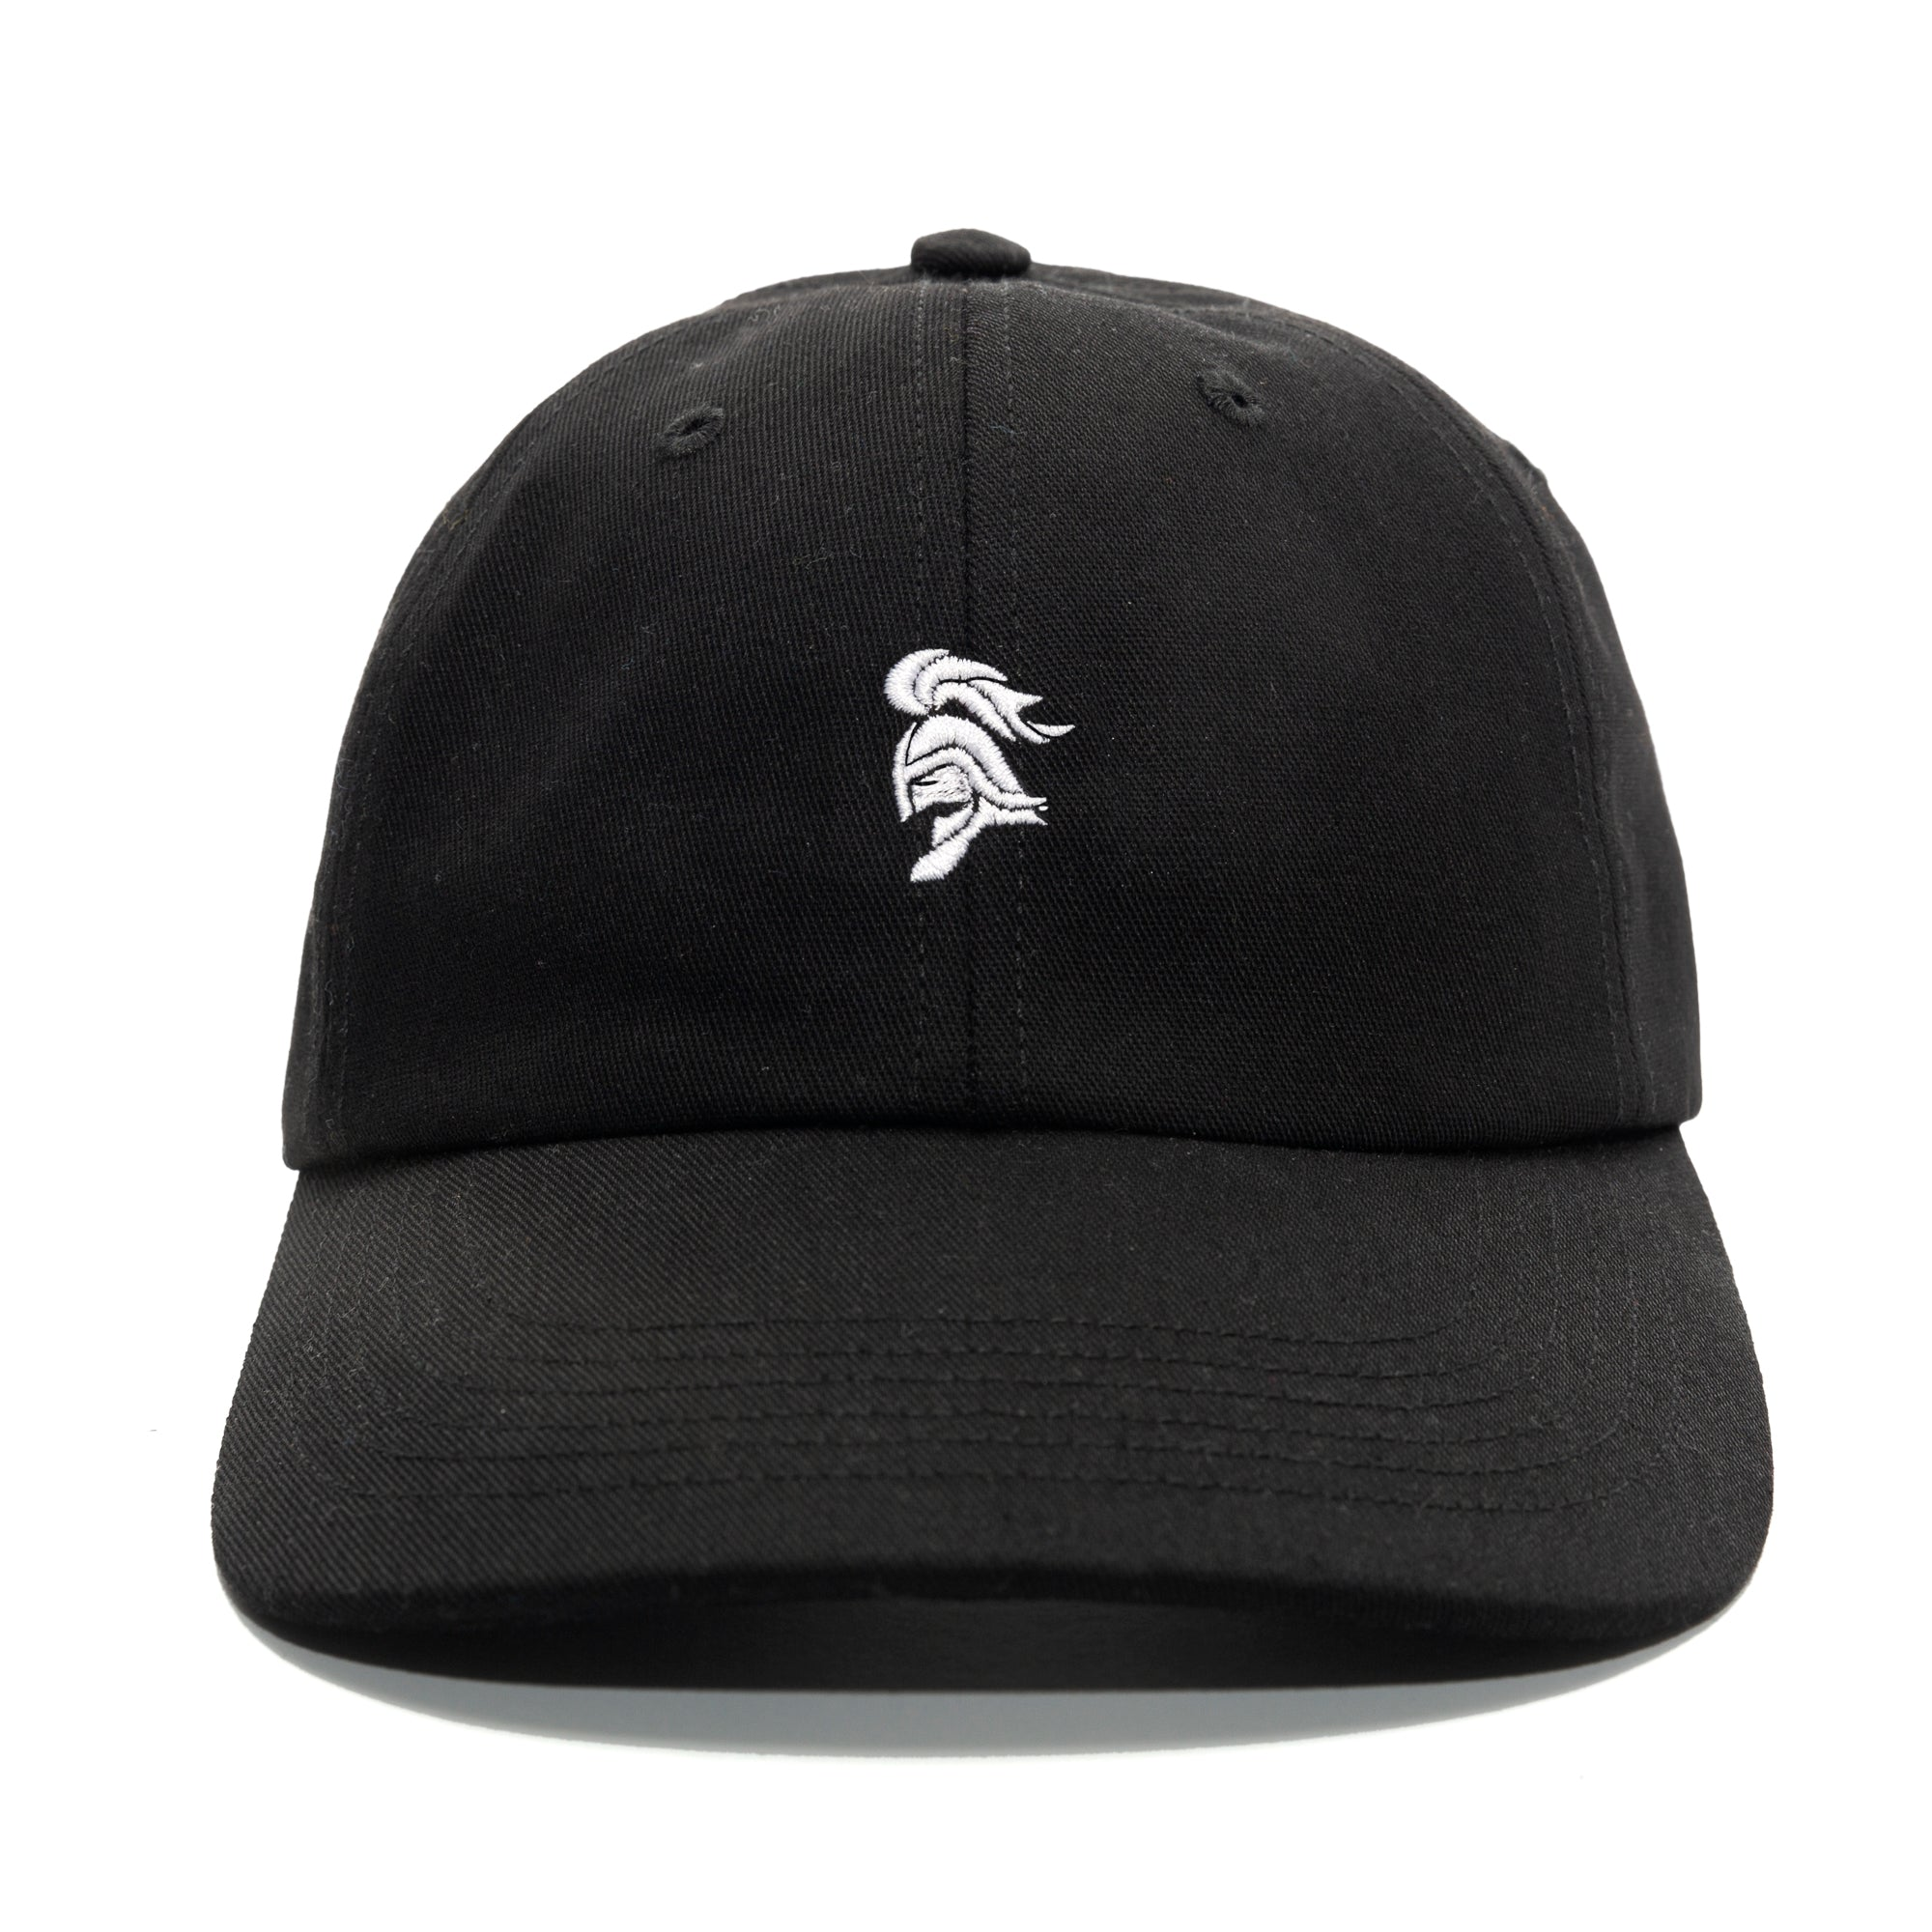 Load image into Gallery viewer, SWFC Warrior head logo dad hat